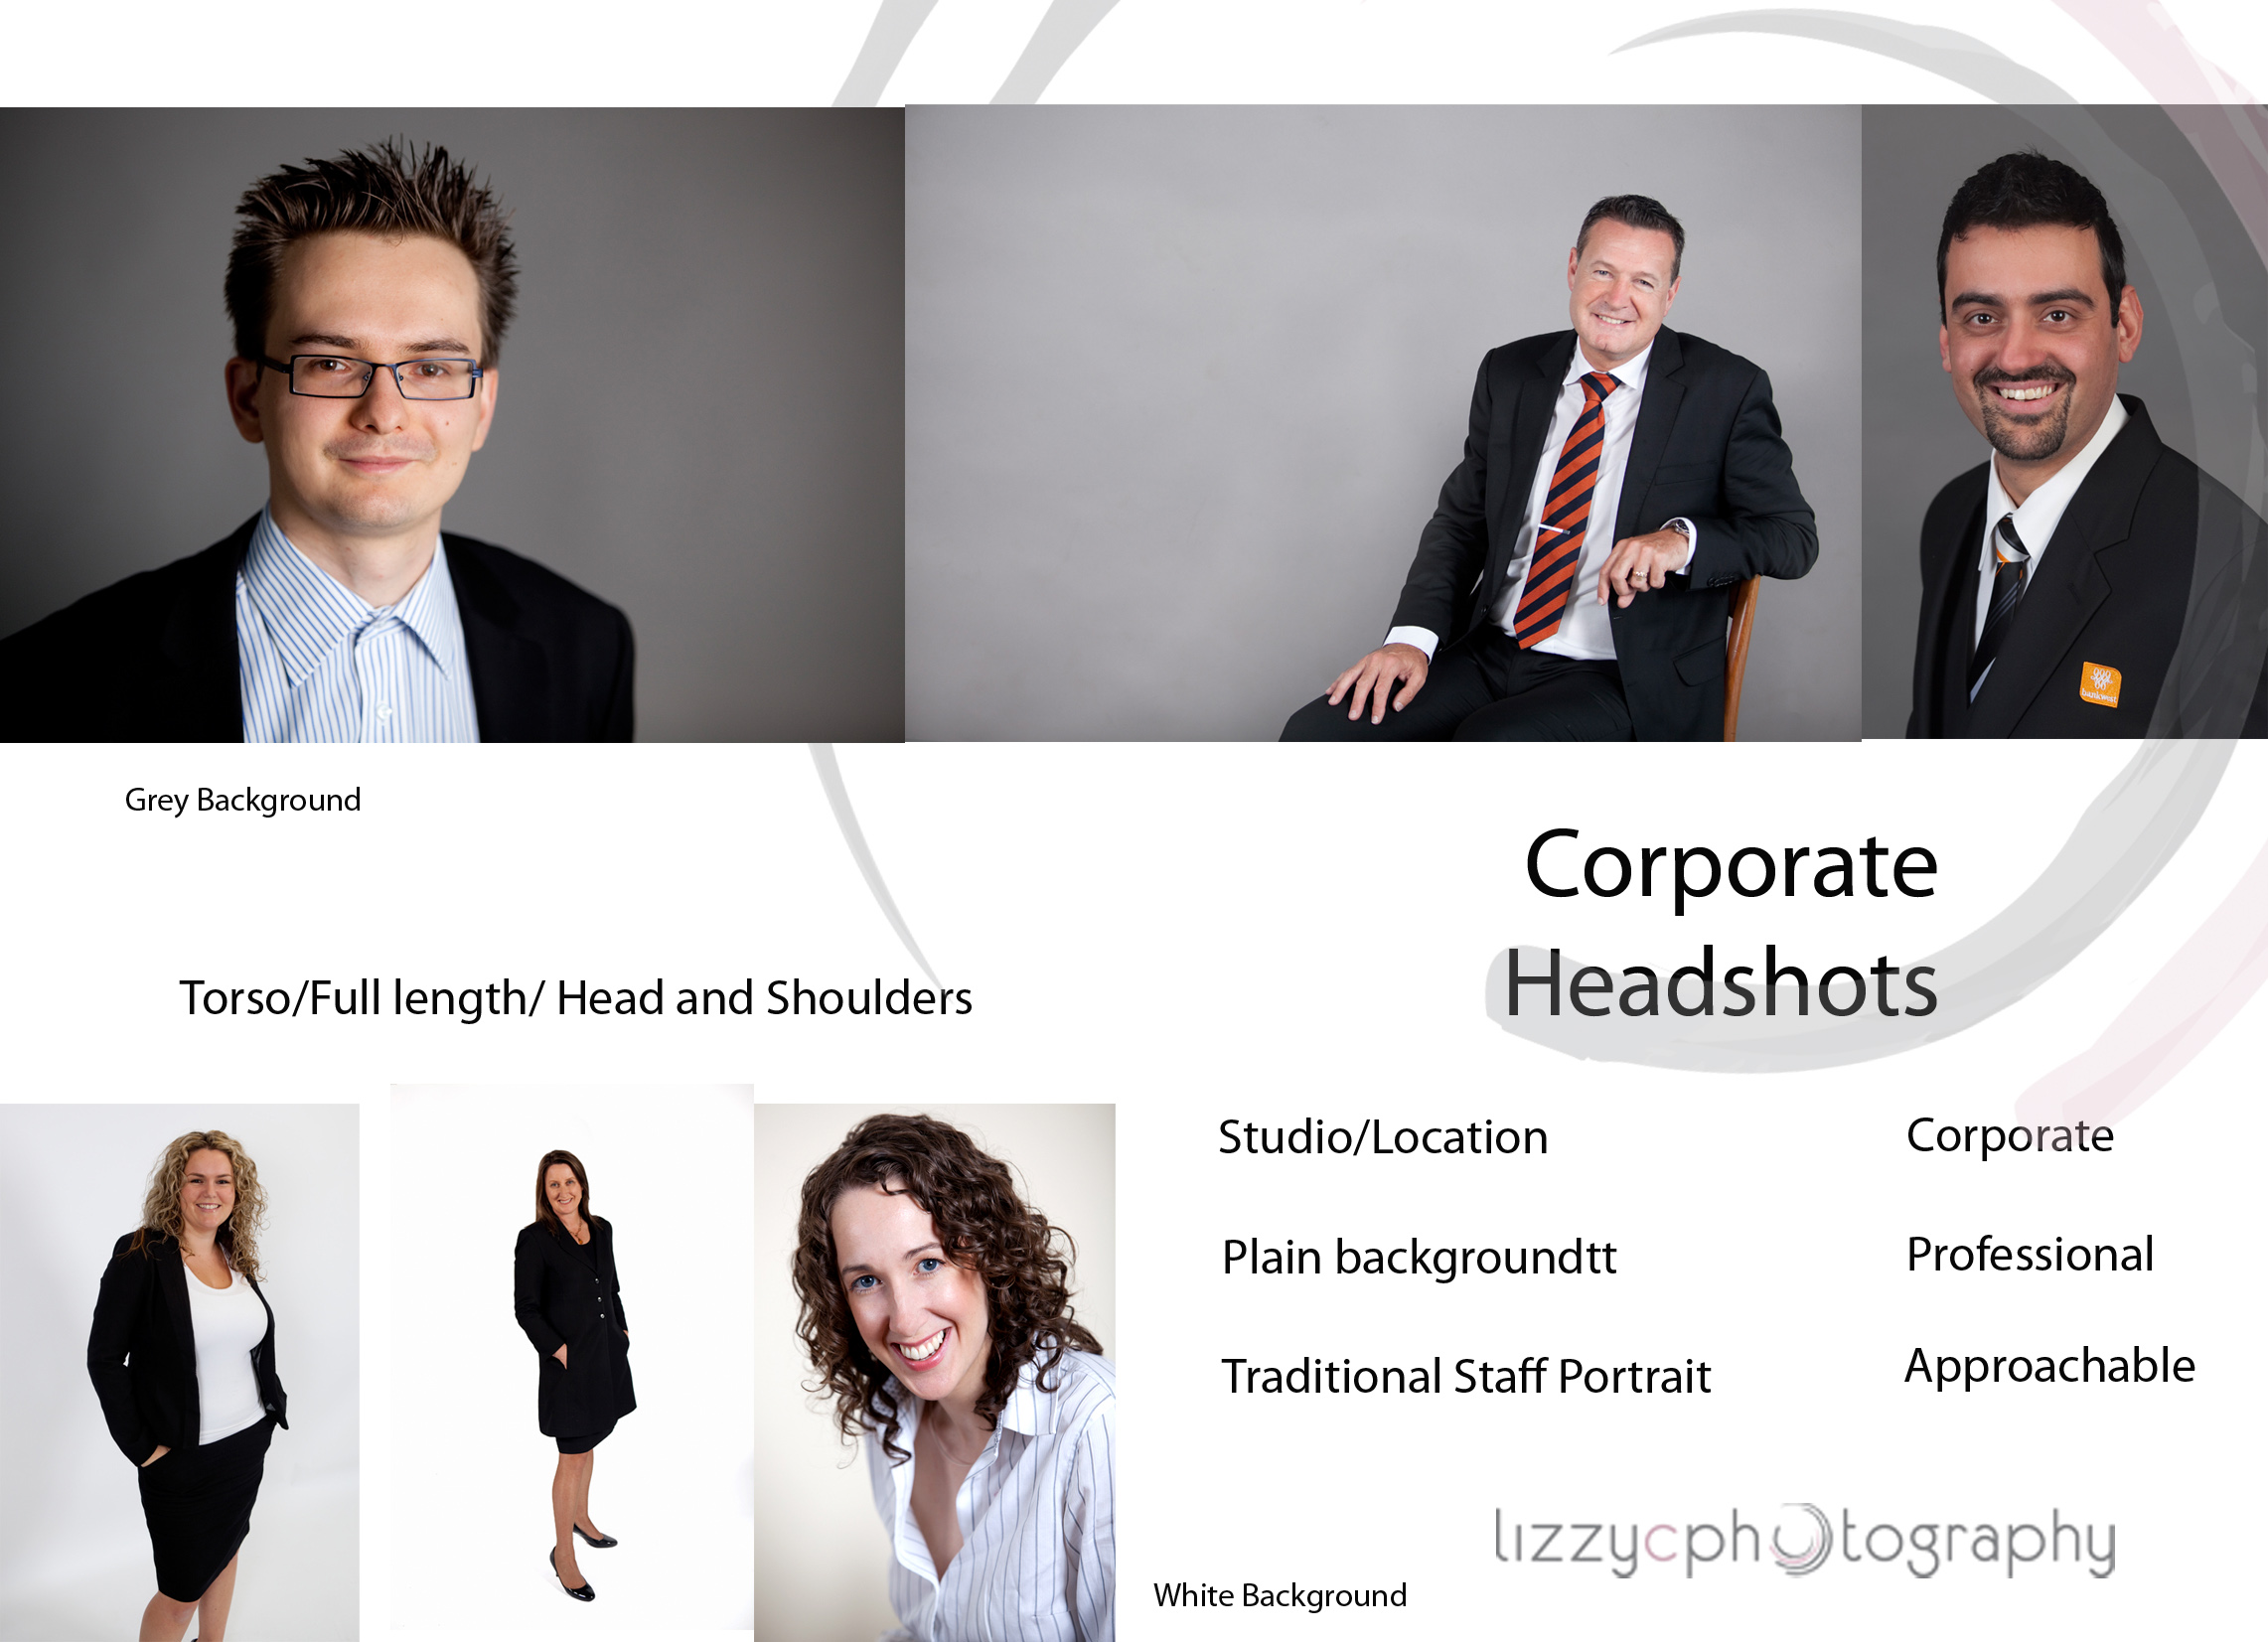 Different styles of corporate headshots